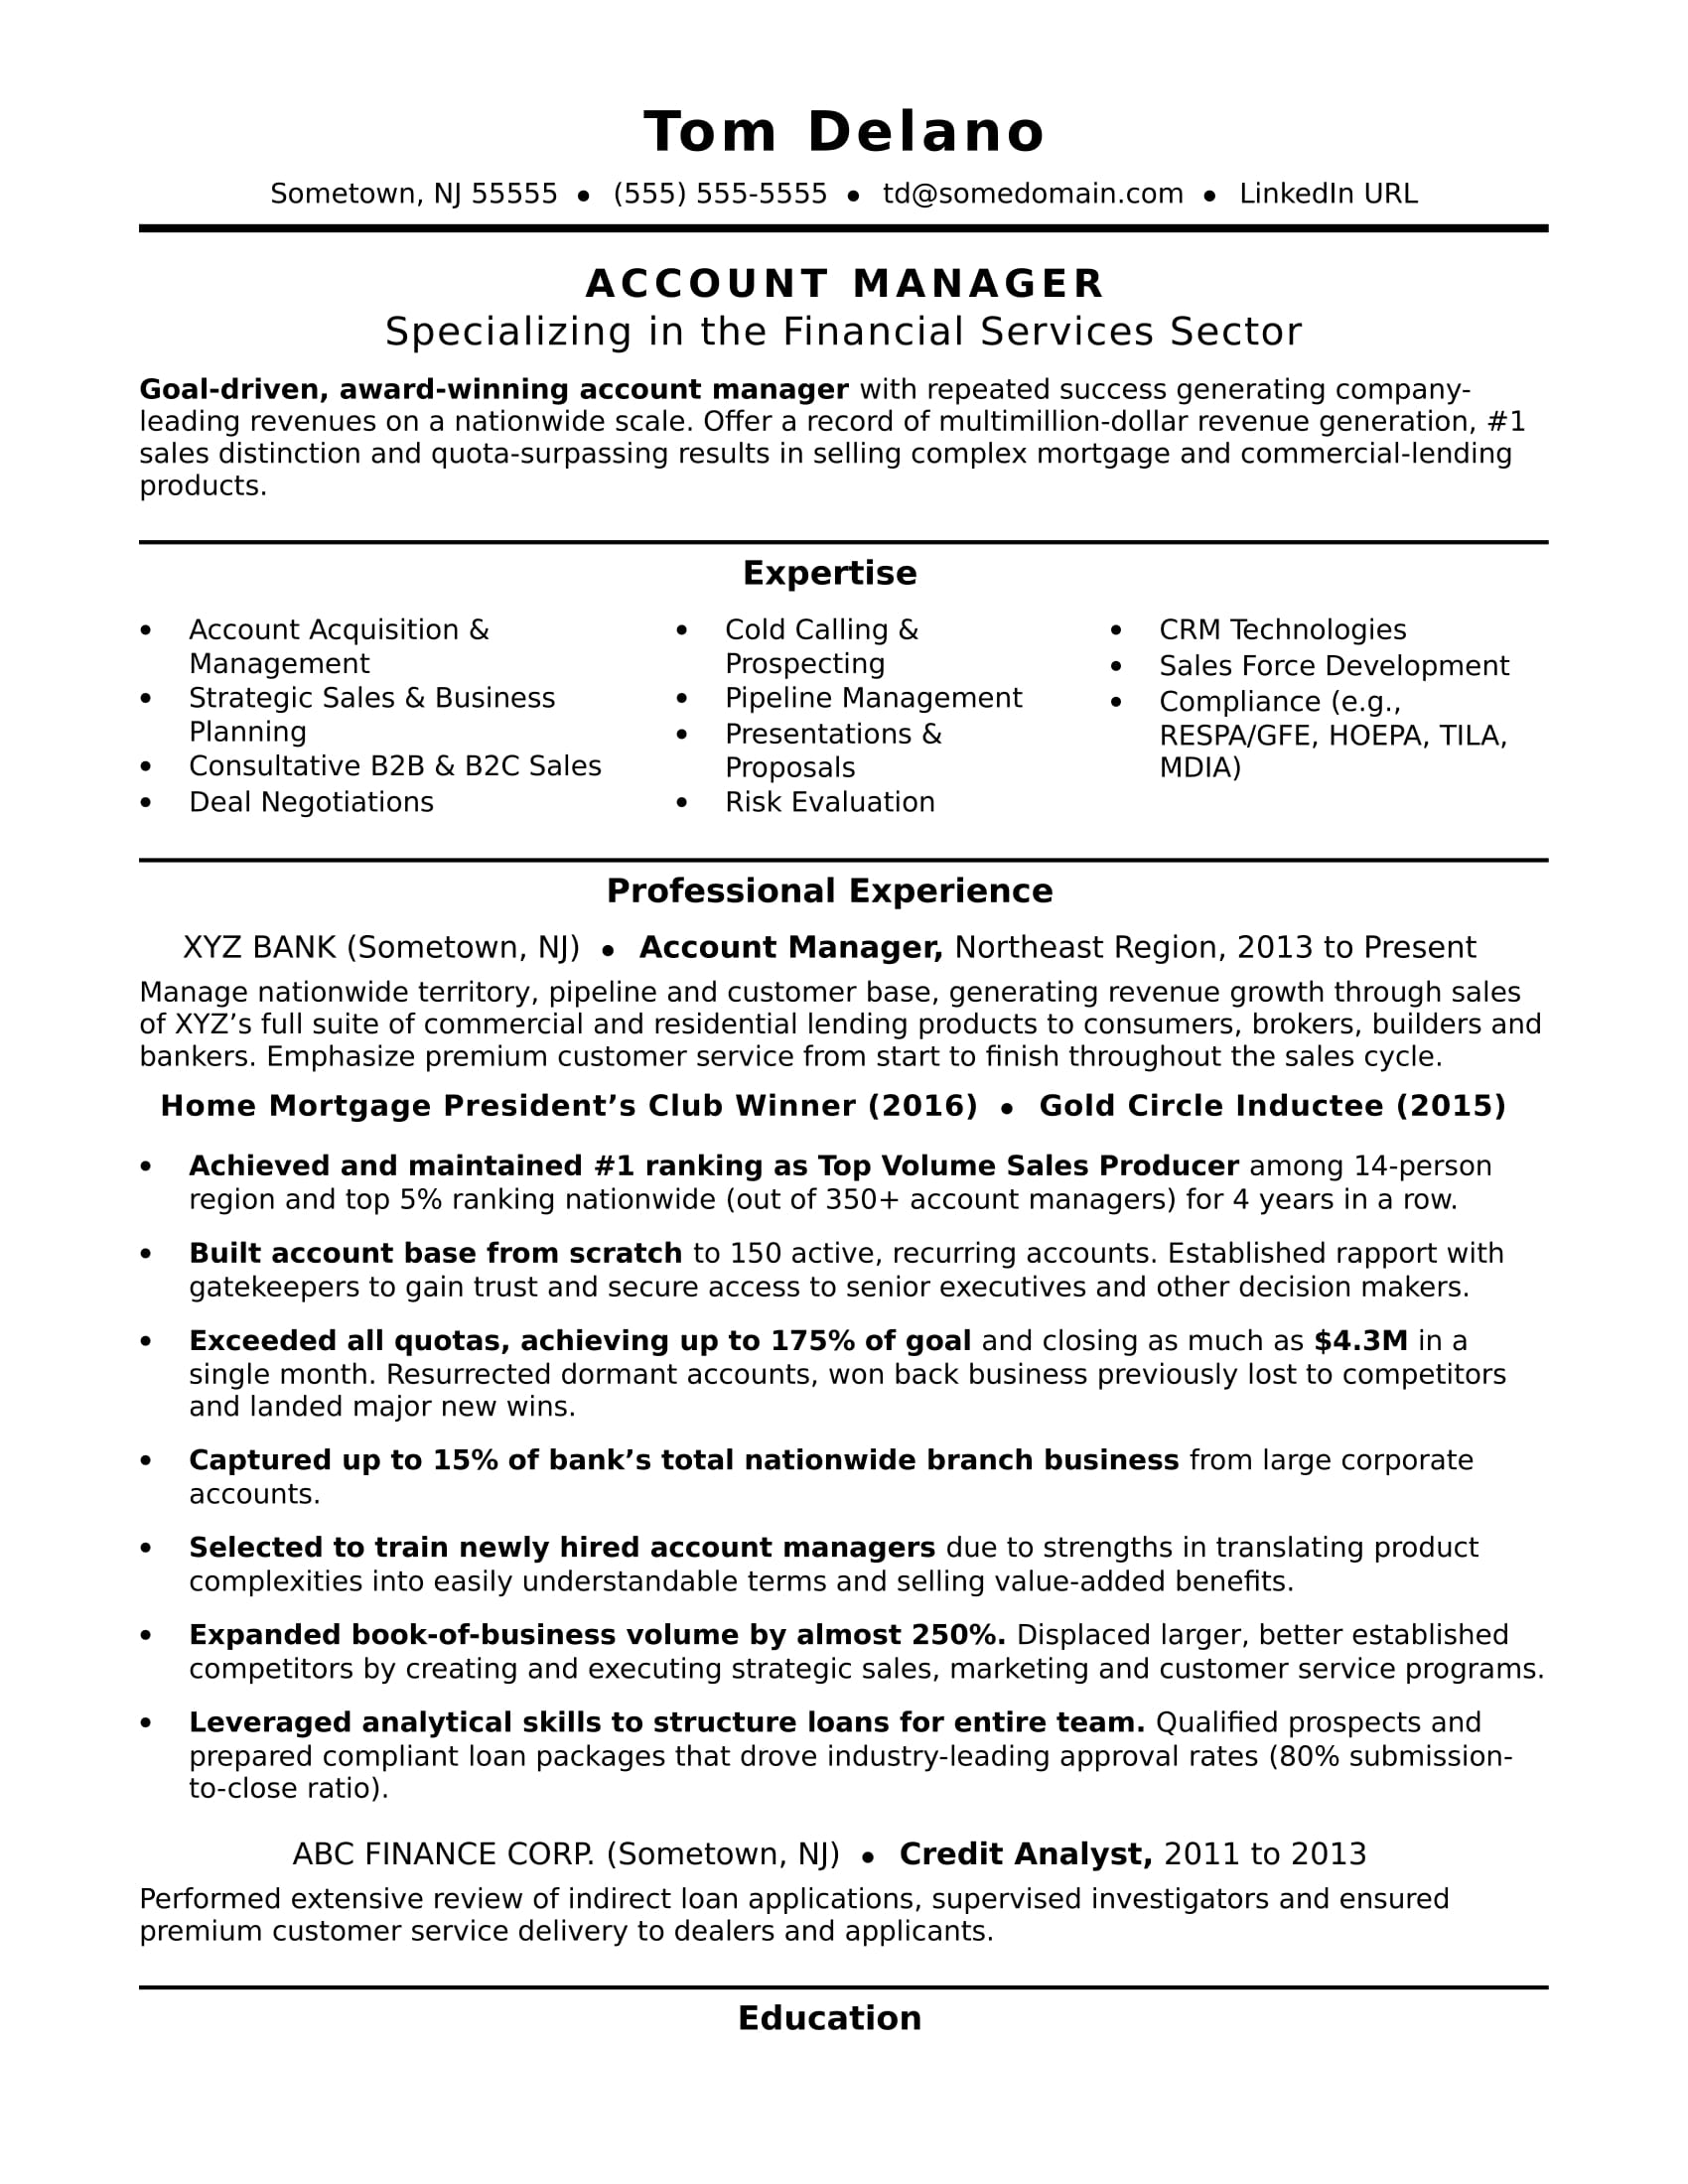 account manager resume sample monster terms for customer service mba finance internship Resume Resume Terms For Customer Service